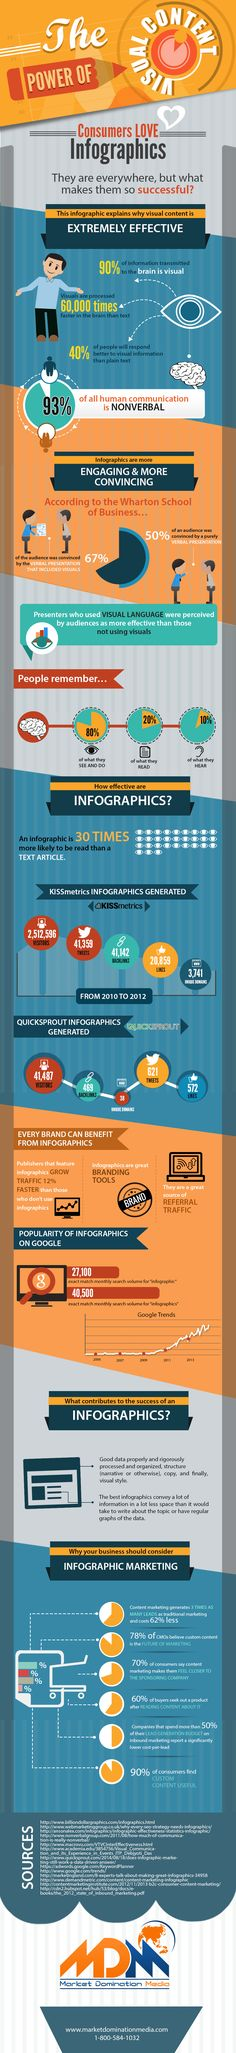 Learn why infographics are so effective in this infographic via @HubSpot